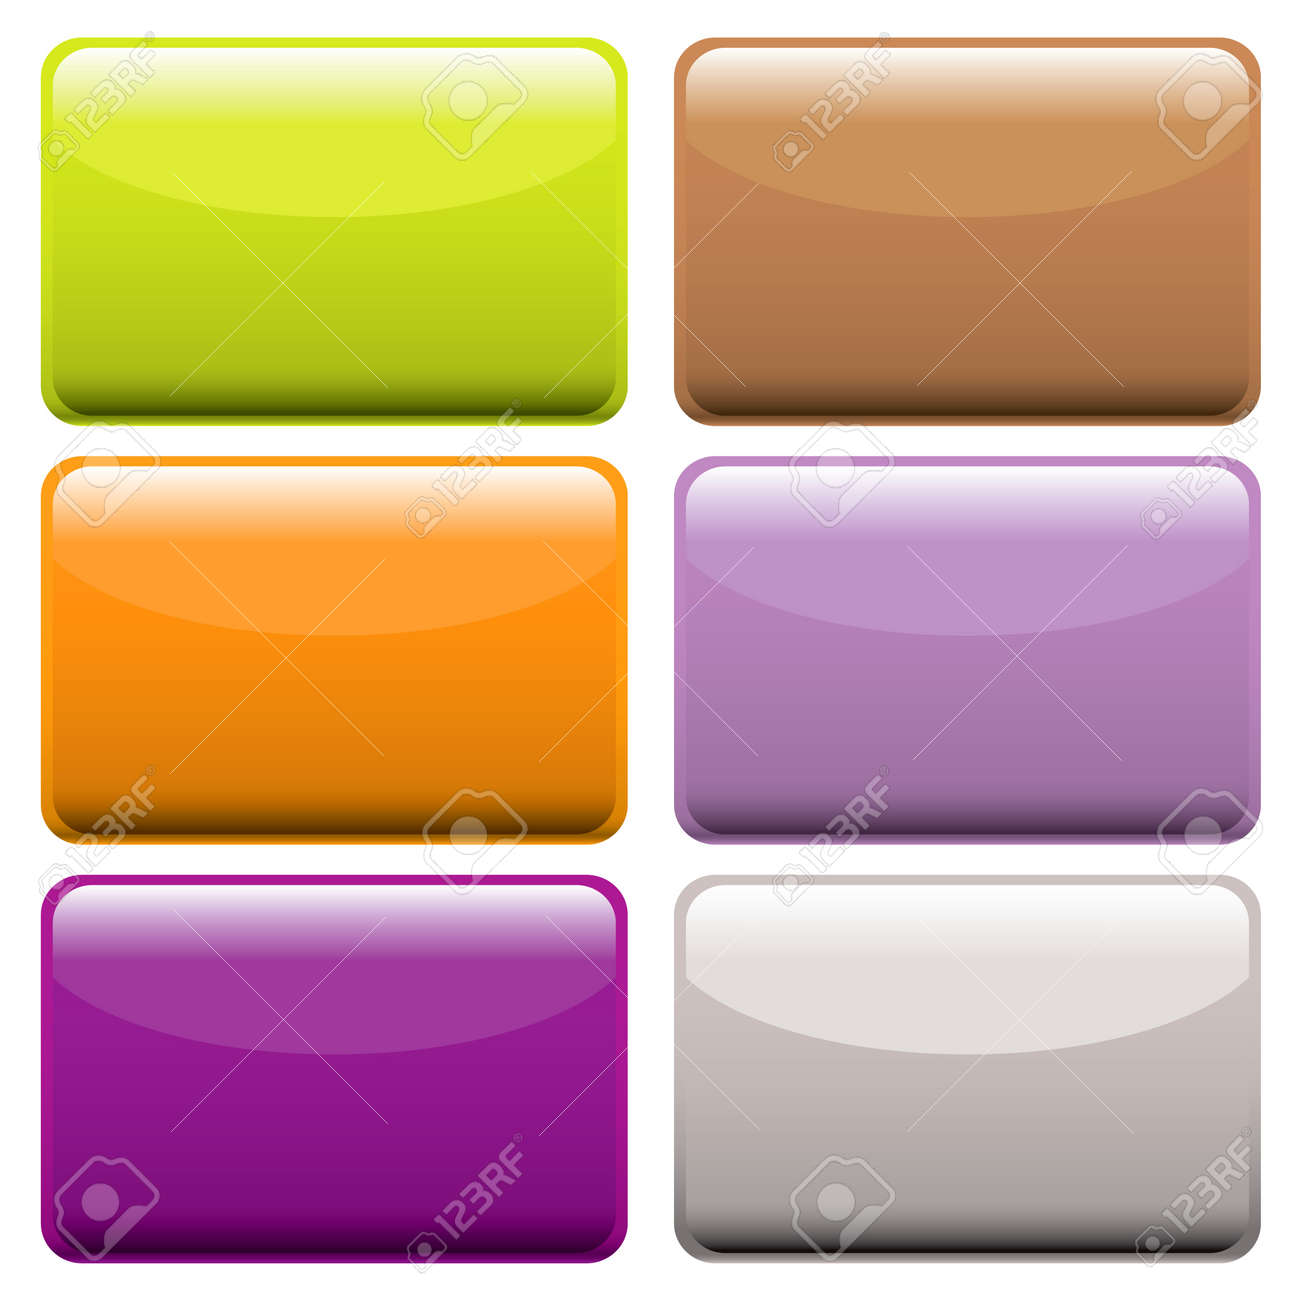 Collection of brightly colored web buttons with room to add text or icons Stock Vector - 6312941